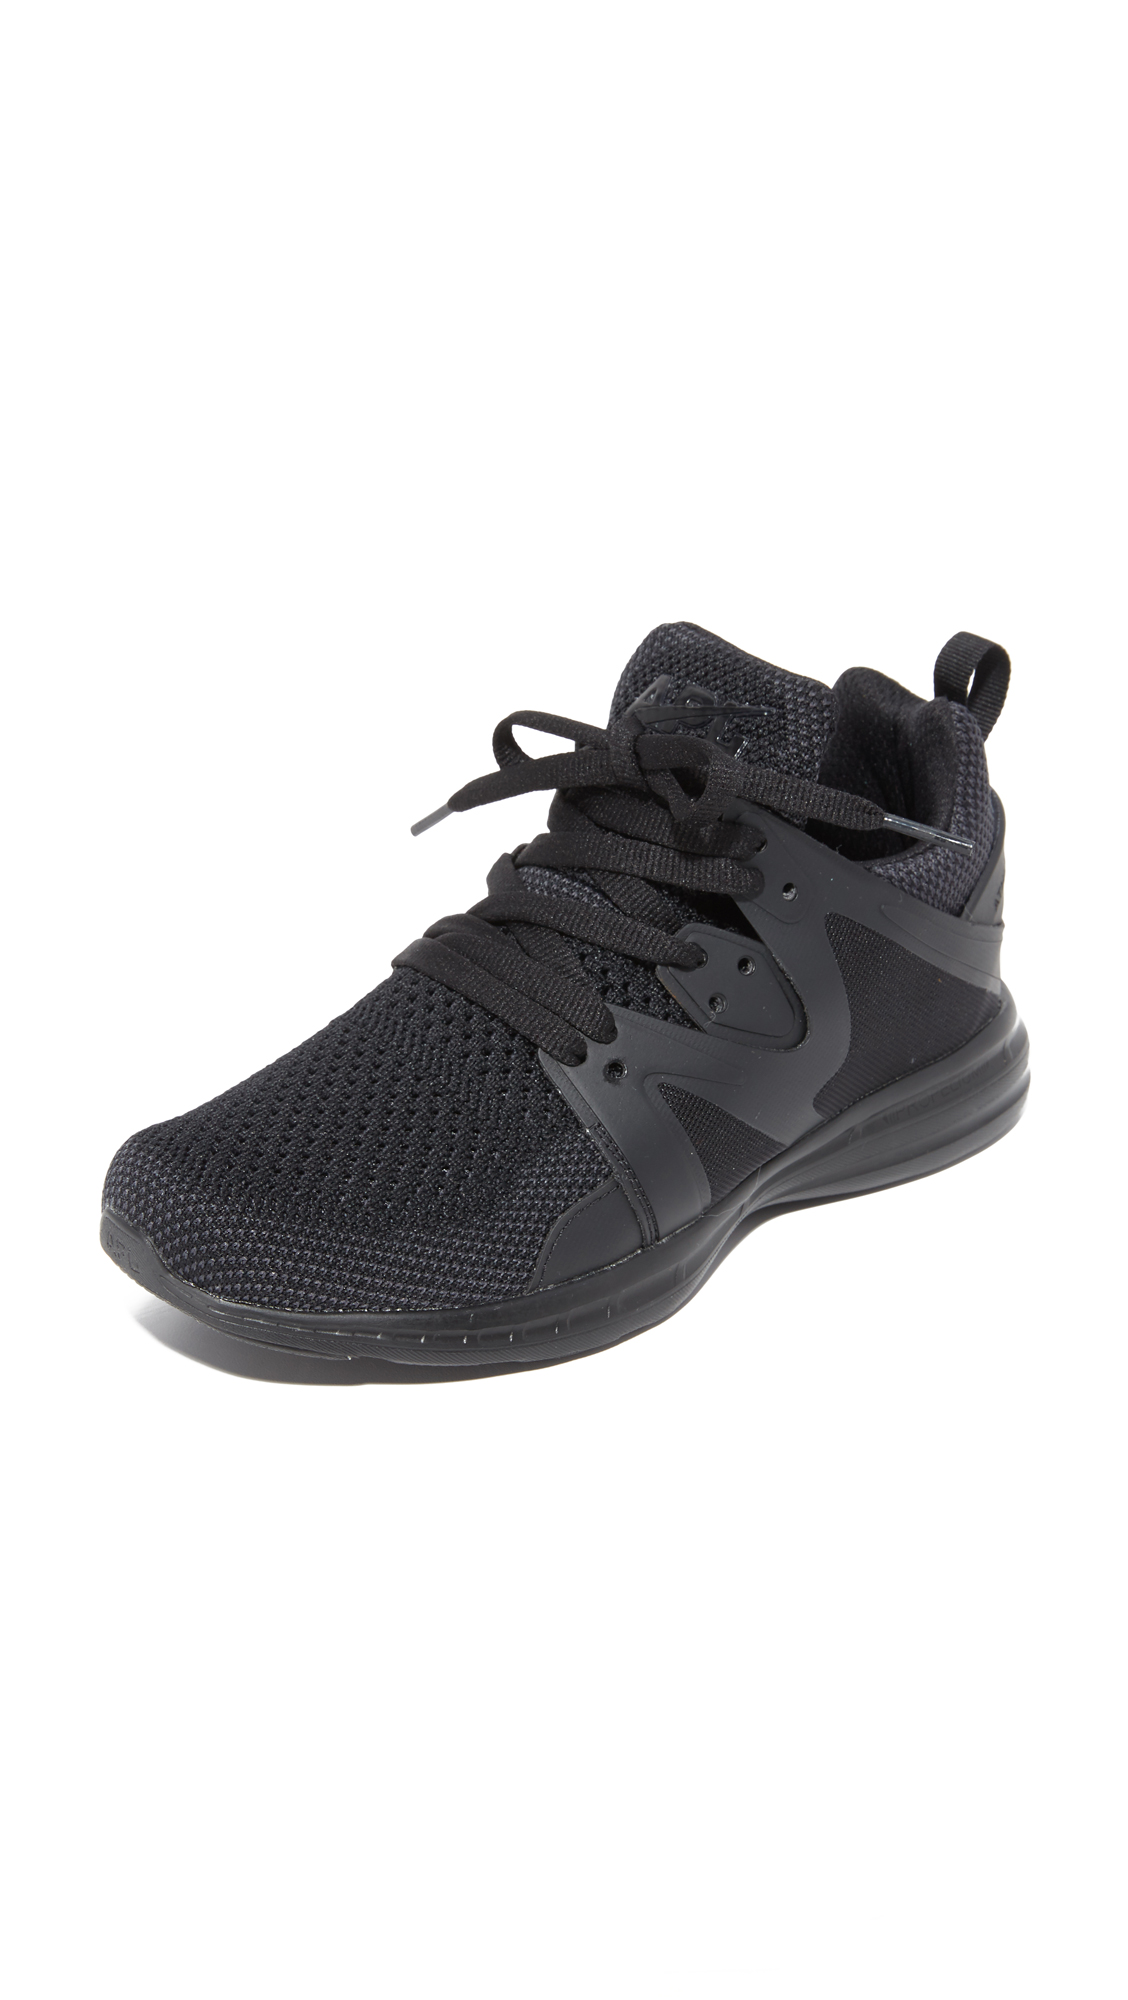 These APL: Athletic Propulsion Labs sneakers are made from breathable mesh and sculpted rubber panels. Padded top line and pull tab at the heel. Lace up closure. Foam platform and rubber sole. Fabric: Mesh. Imported, China.